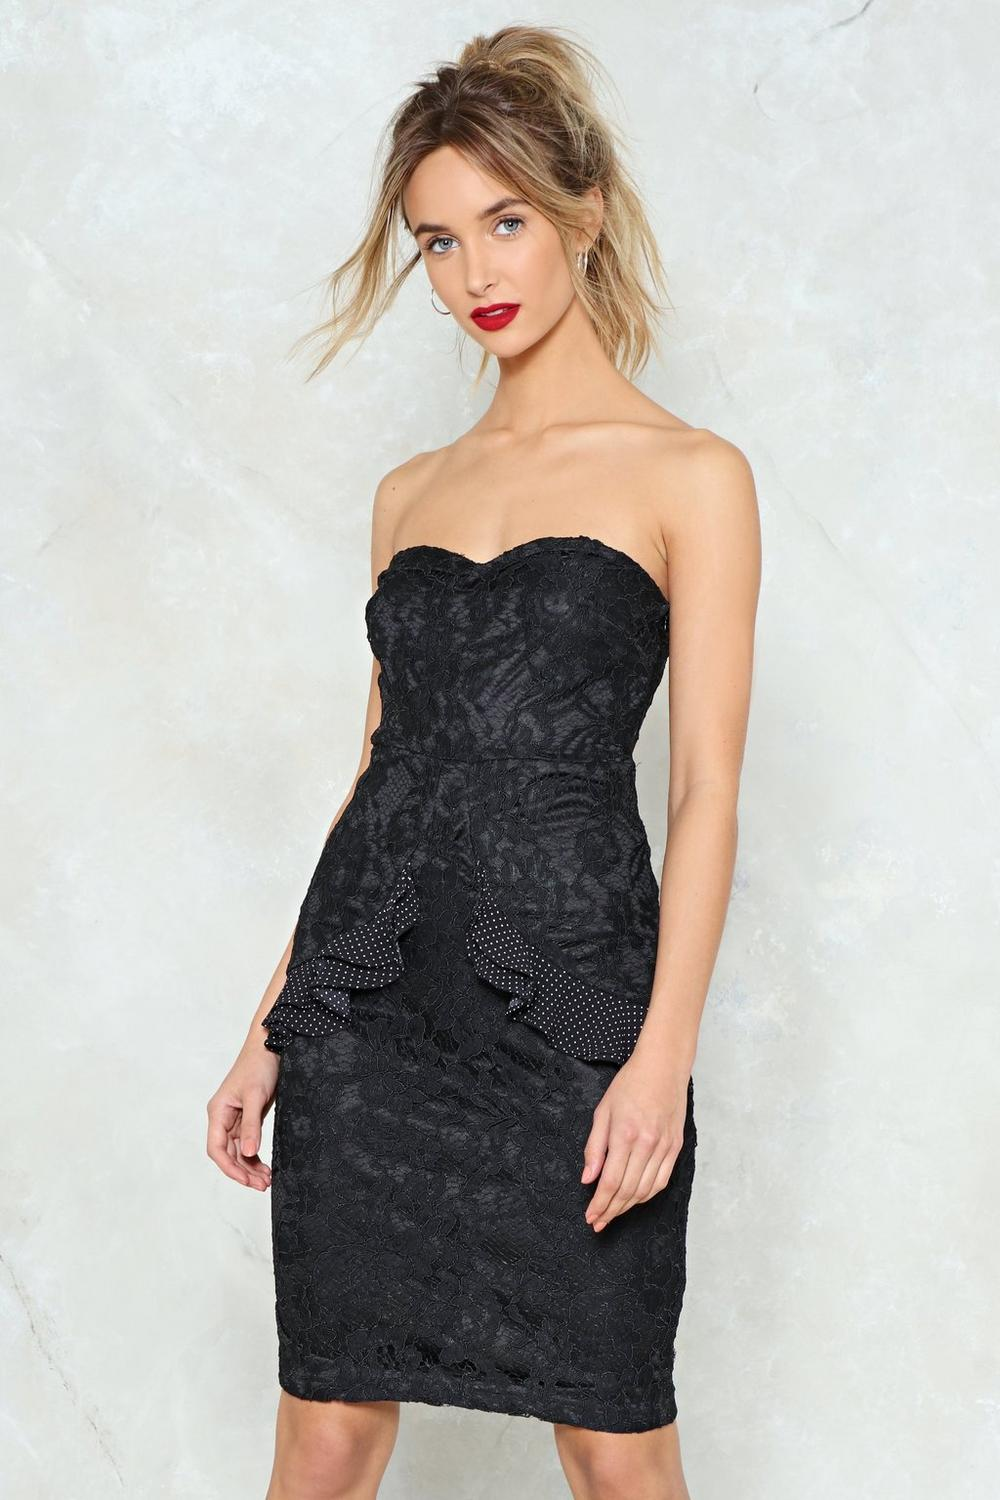 Style strapless outfits with strapless dresses